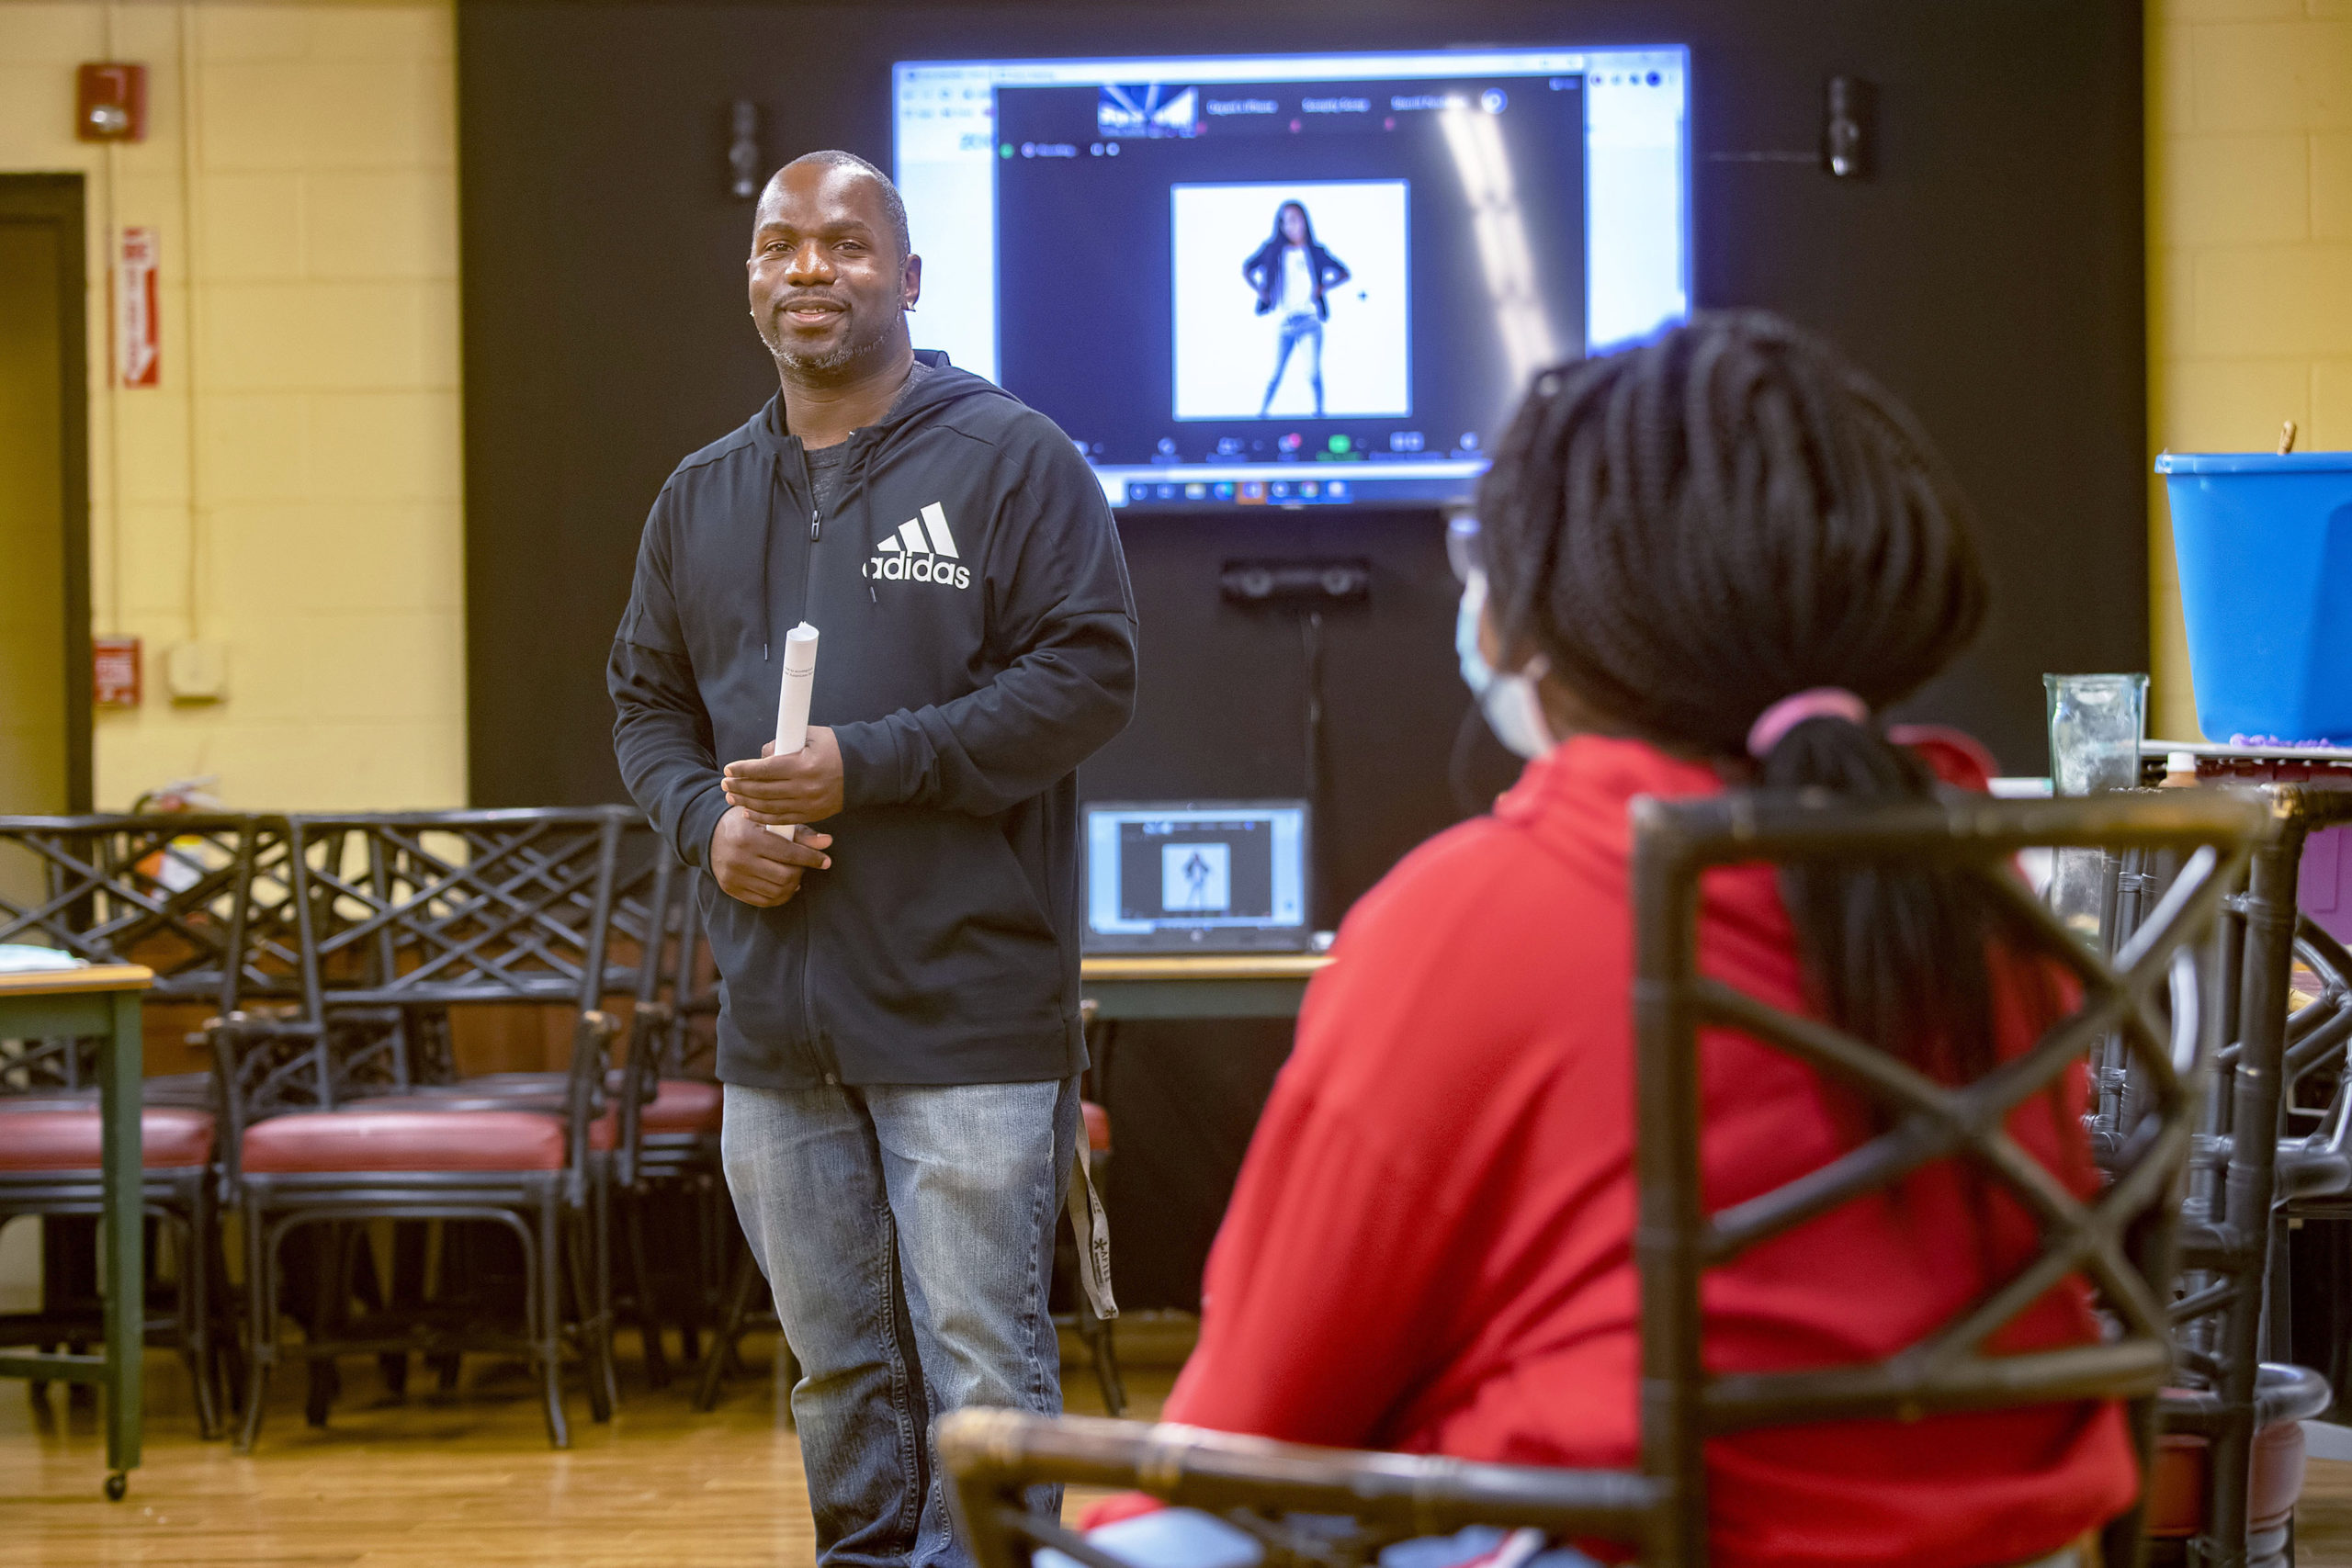 Willie Jenkins teaches a workshop on African American History to a group of teens as part of the Zenith Youth Program at the Bridgehampton Child Care and Recreational Center on Friday evening. MICHAEL HELLER